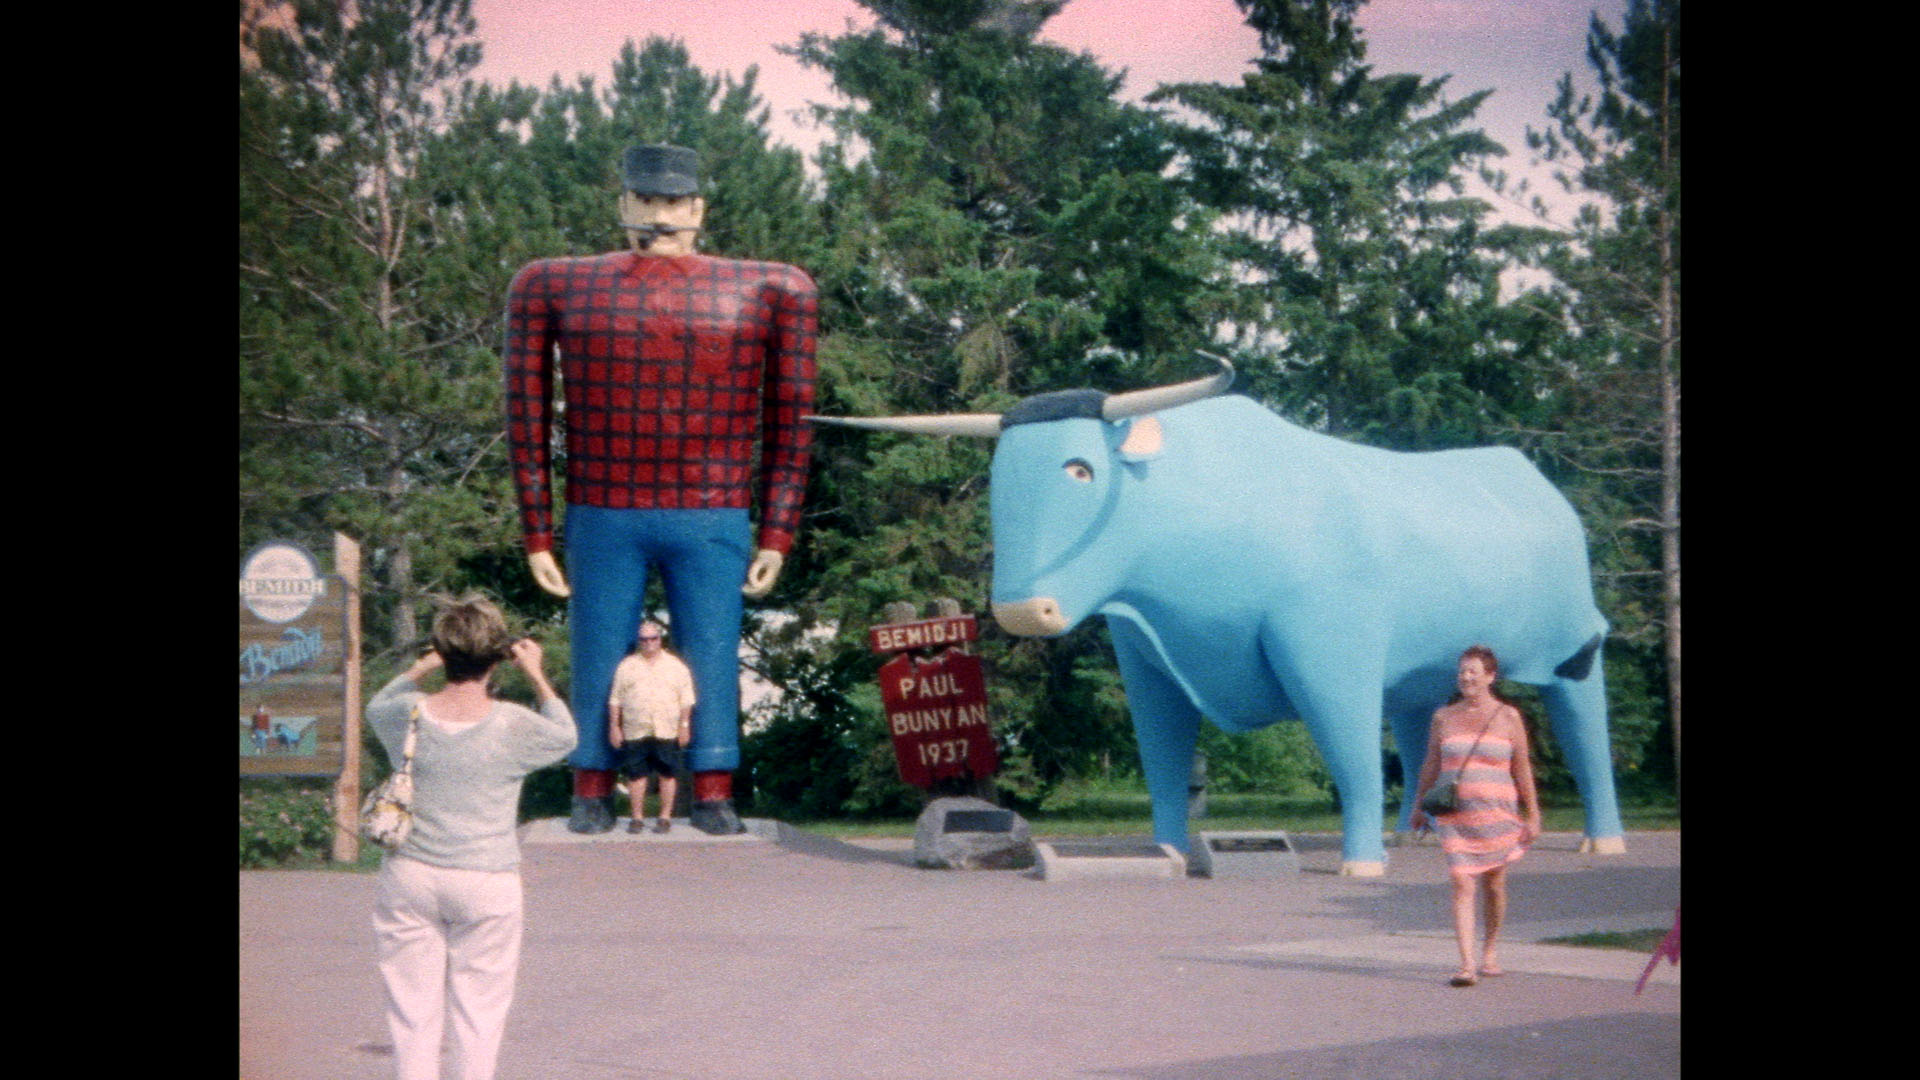 Paul Bunyan still 2.jpg